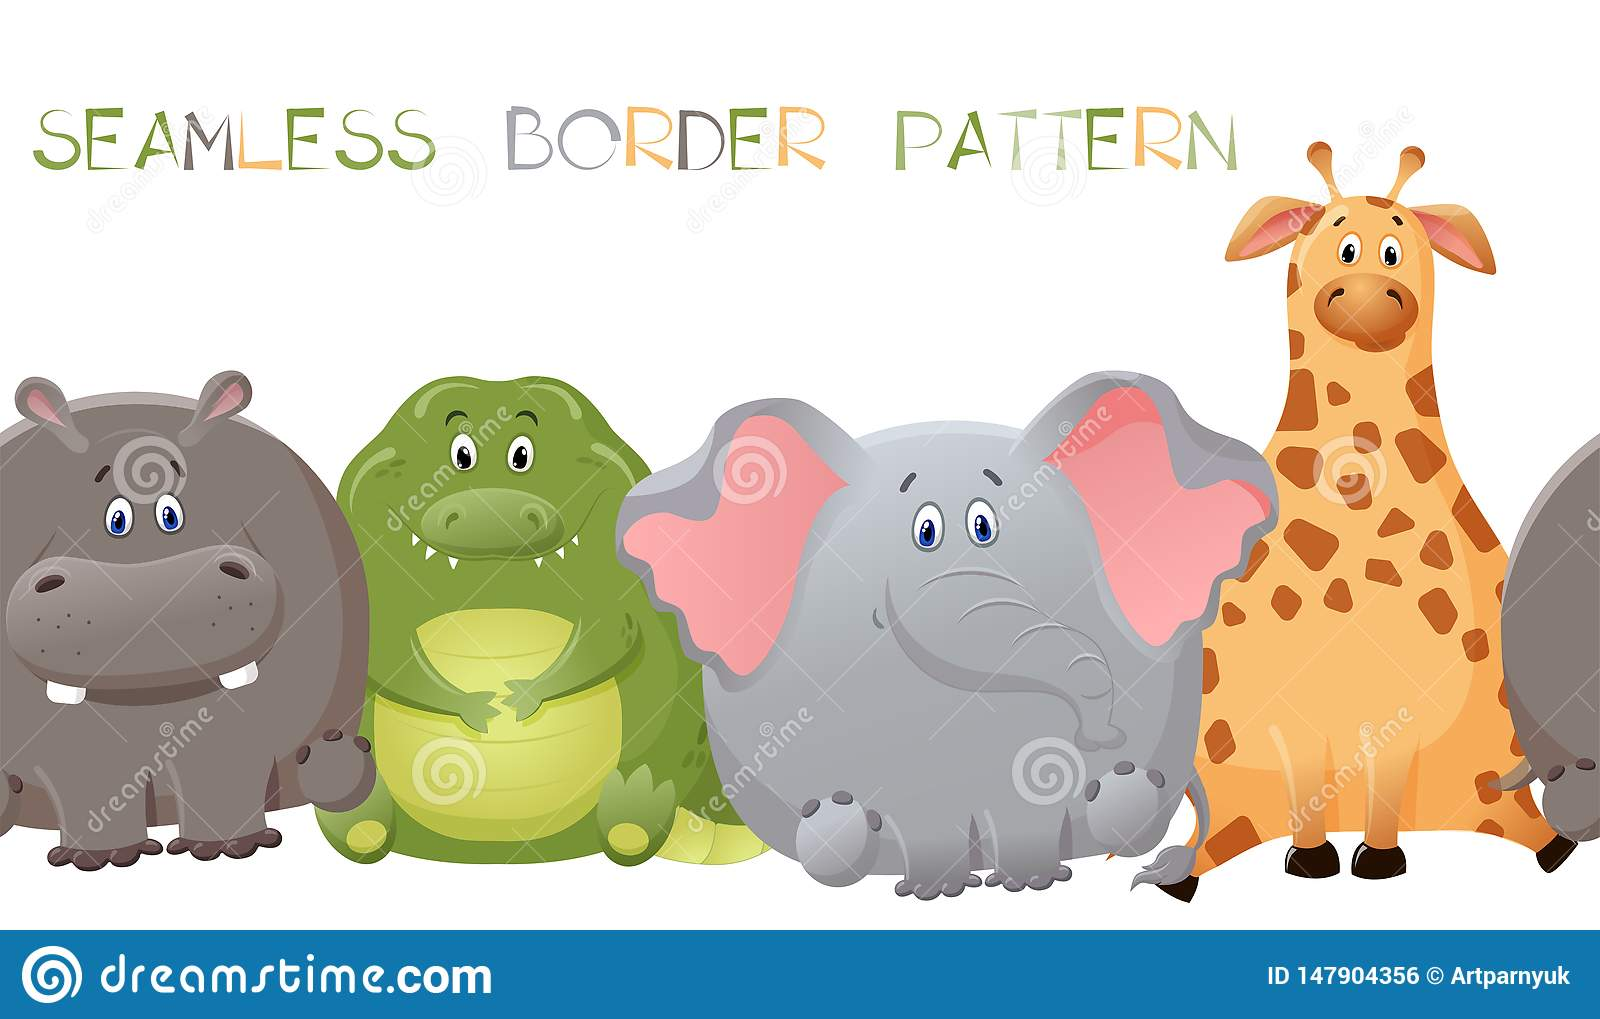 Vector seamless border pattern with elephant, giraffe, crocodile, and hippopotamus. Cute fat cartoon character. The concept of fun